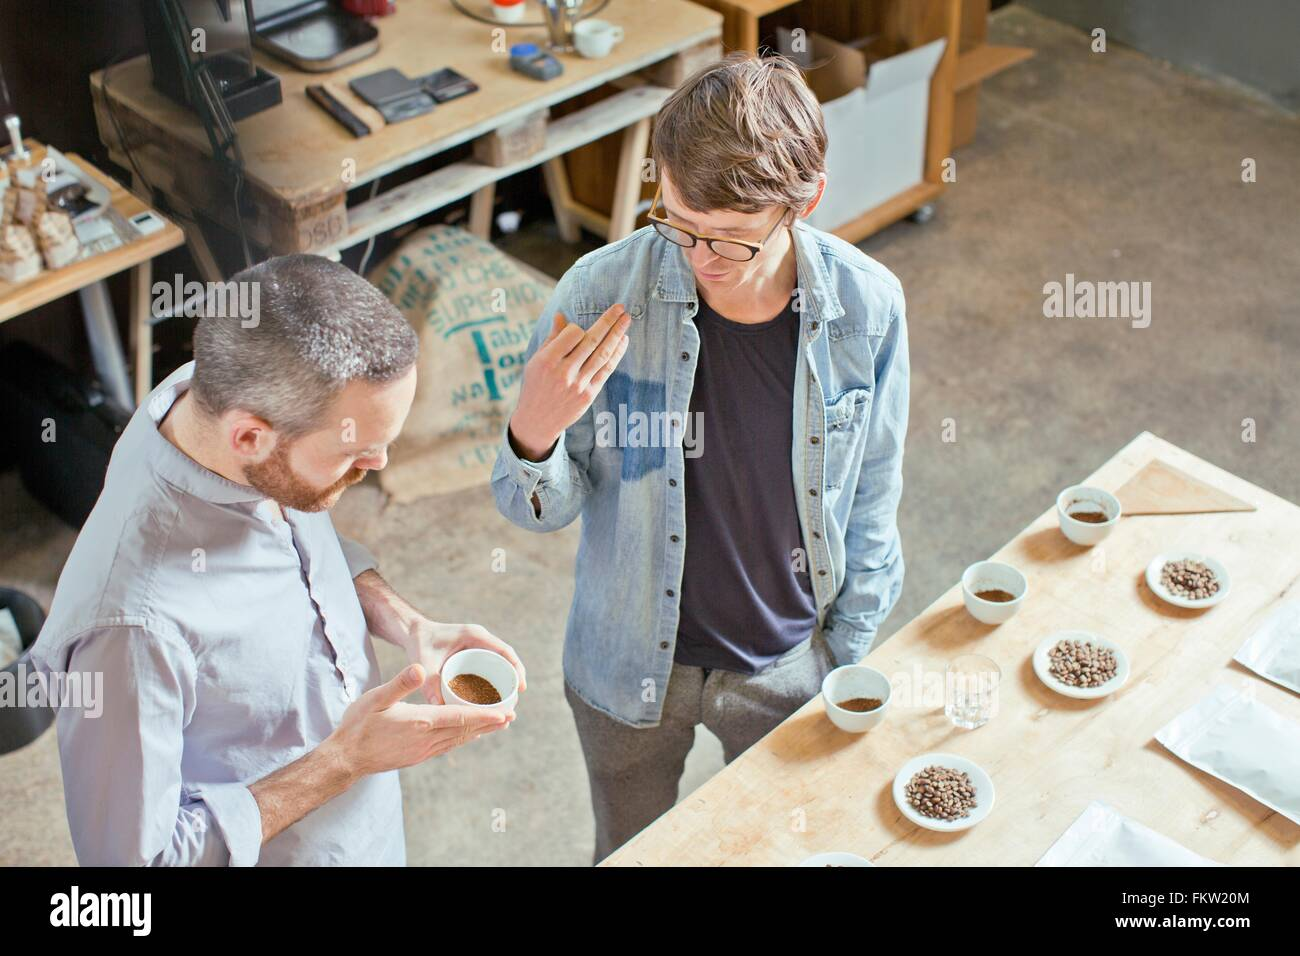 C fee business owner and customer discussing c fee - Stock Image